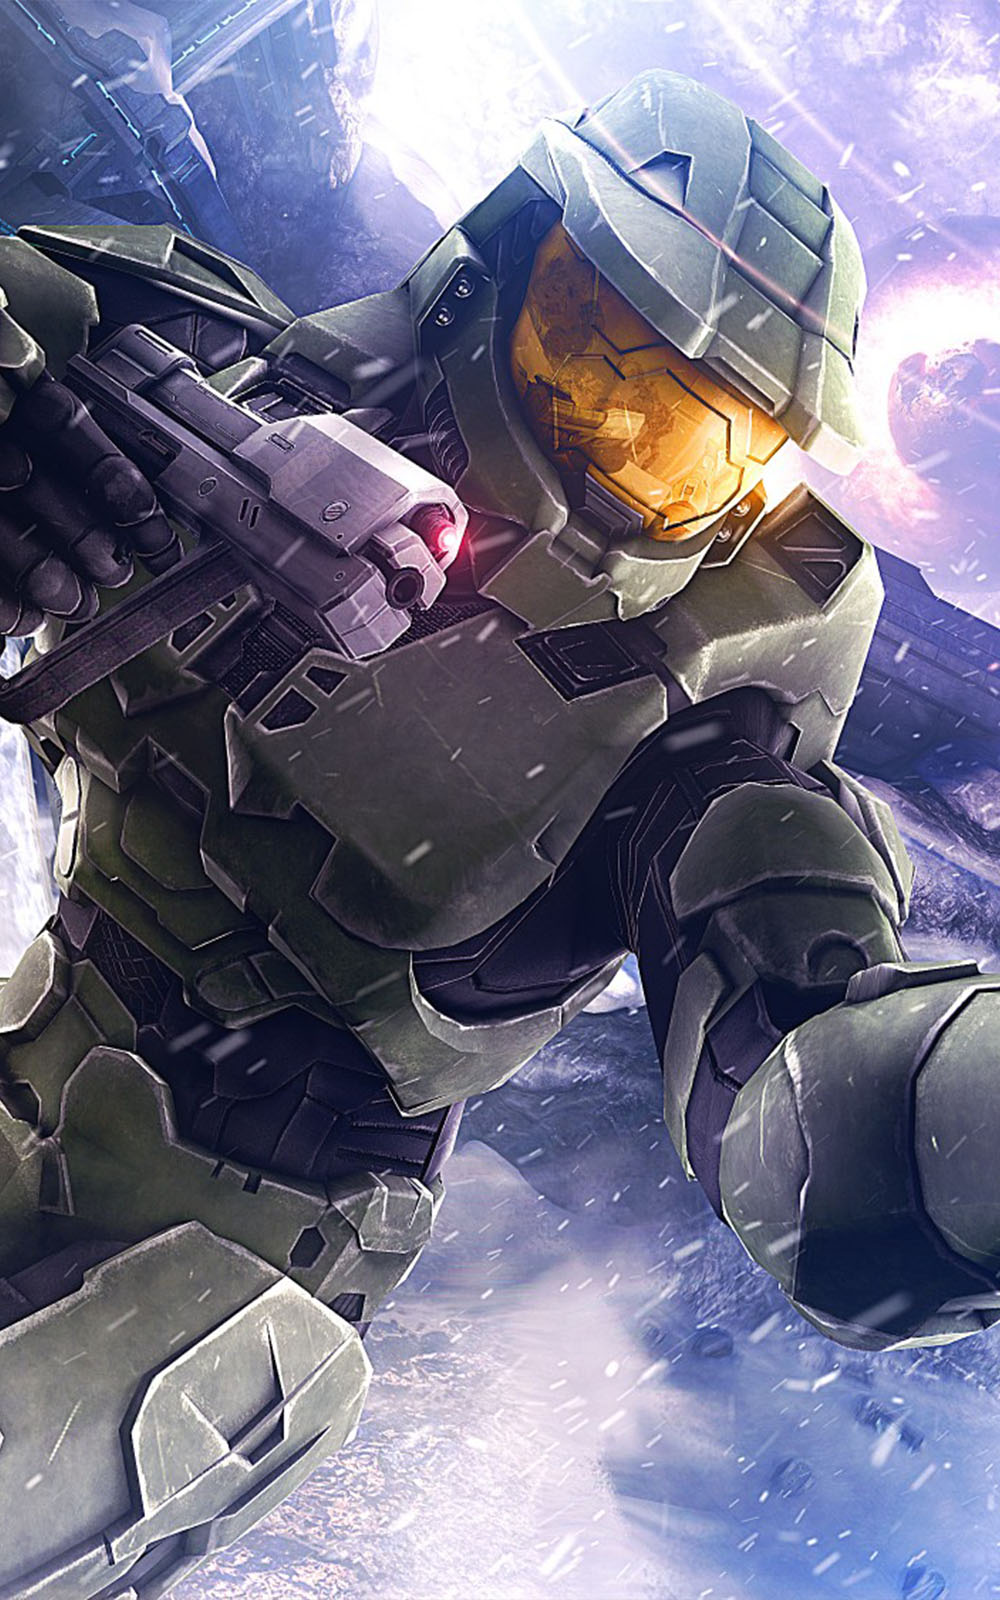 Download Master Chief Halo 3 Free Pure 4k Ultra Hd Mobile